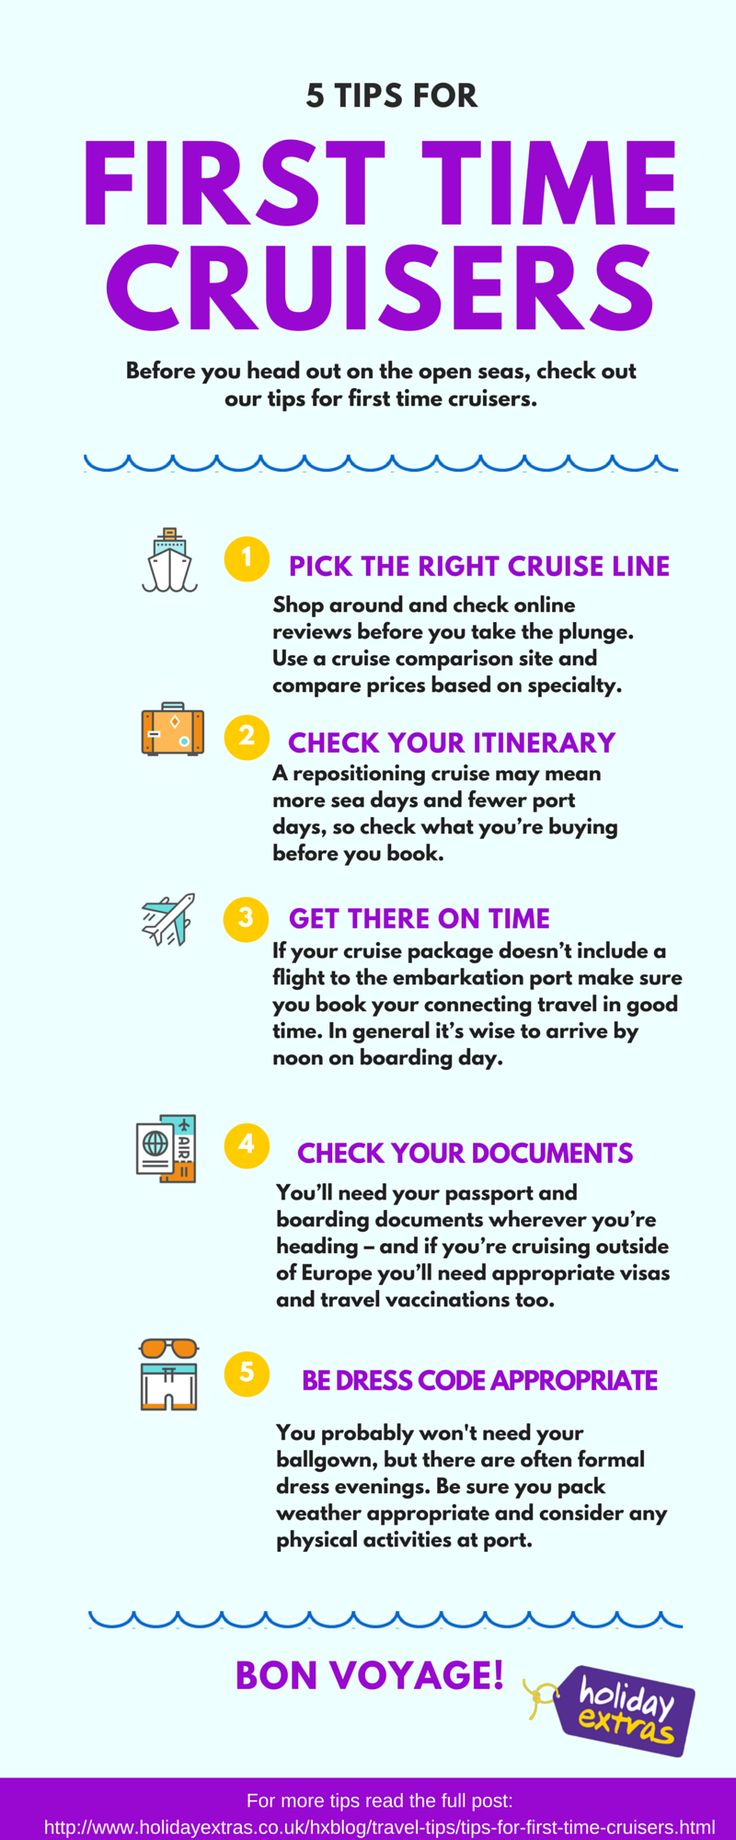 Are you a first-time cruiser? Check out our tips for making the most of your cruise holiday.